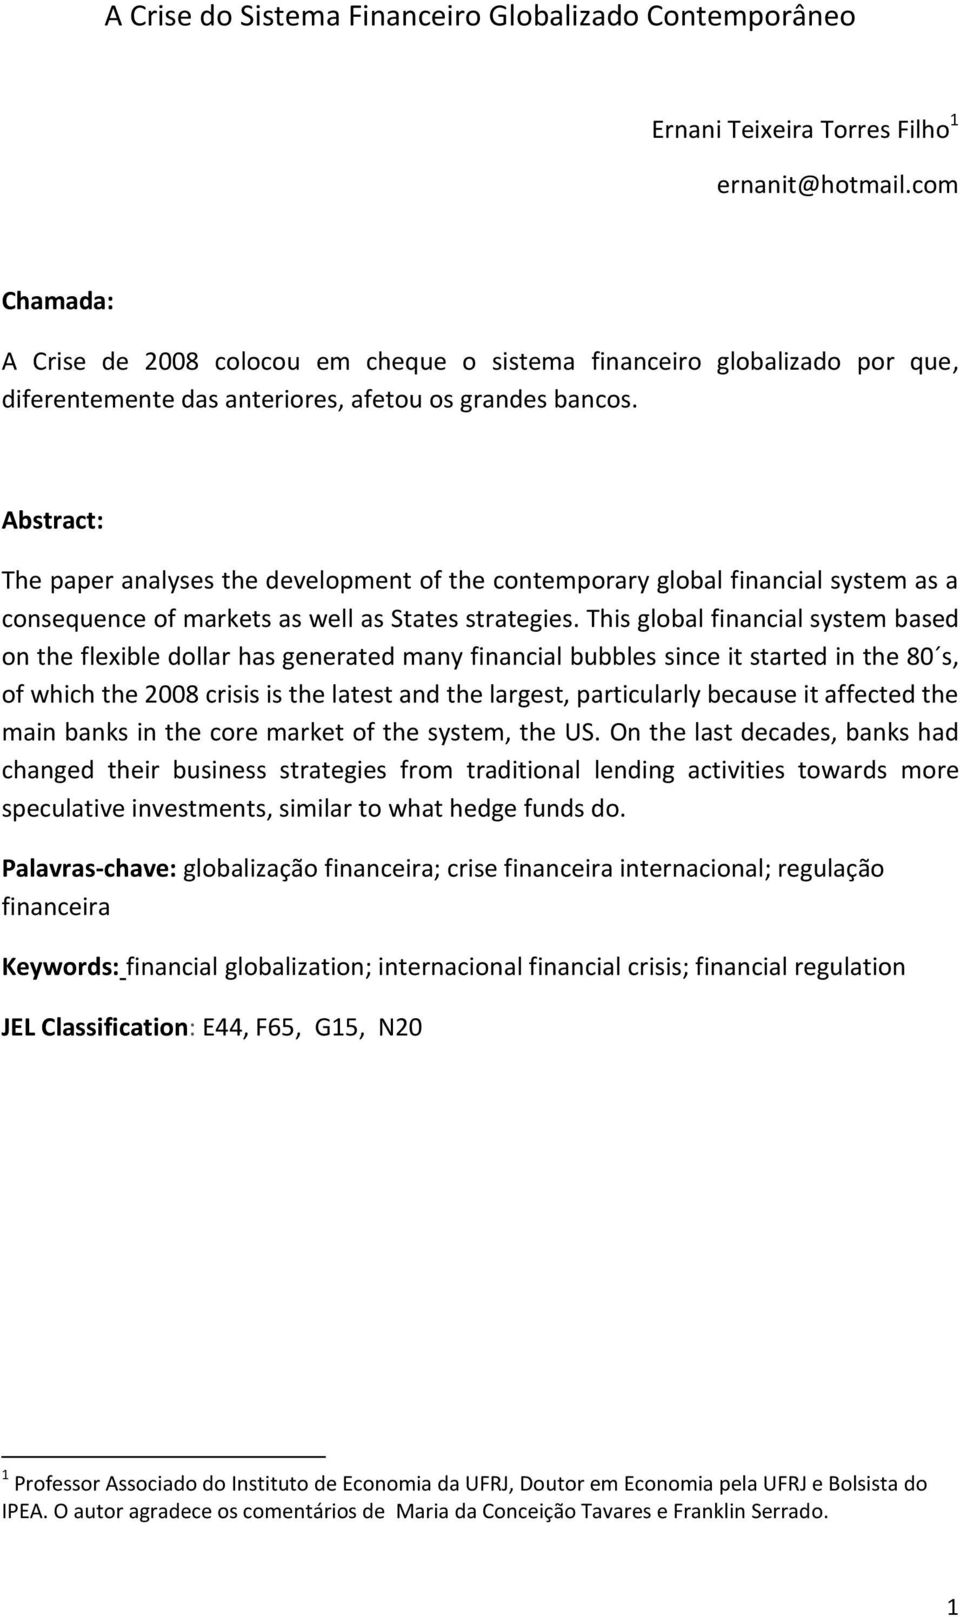 Abstract: The paper analyses the development of the contemporary global financial system as a consequence of markets as well as States strategies.